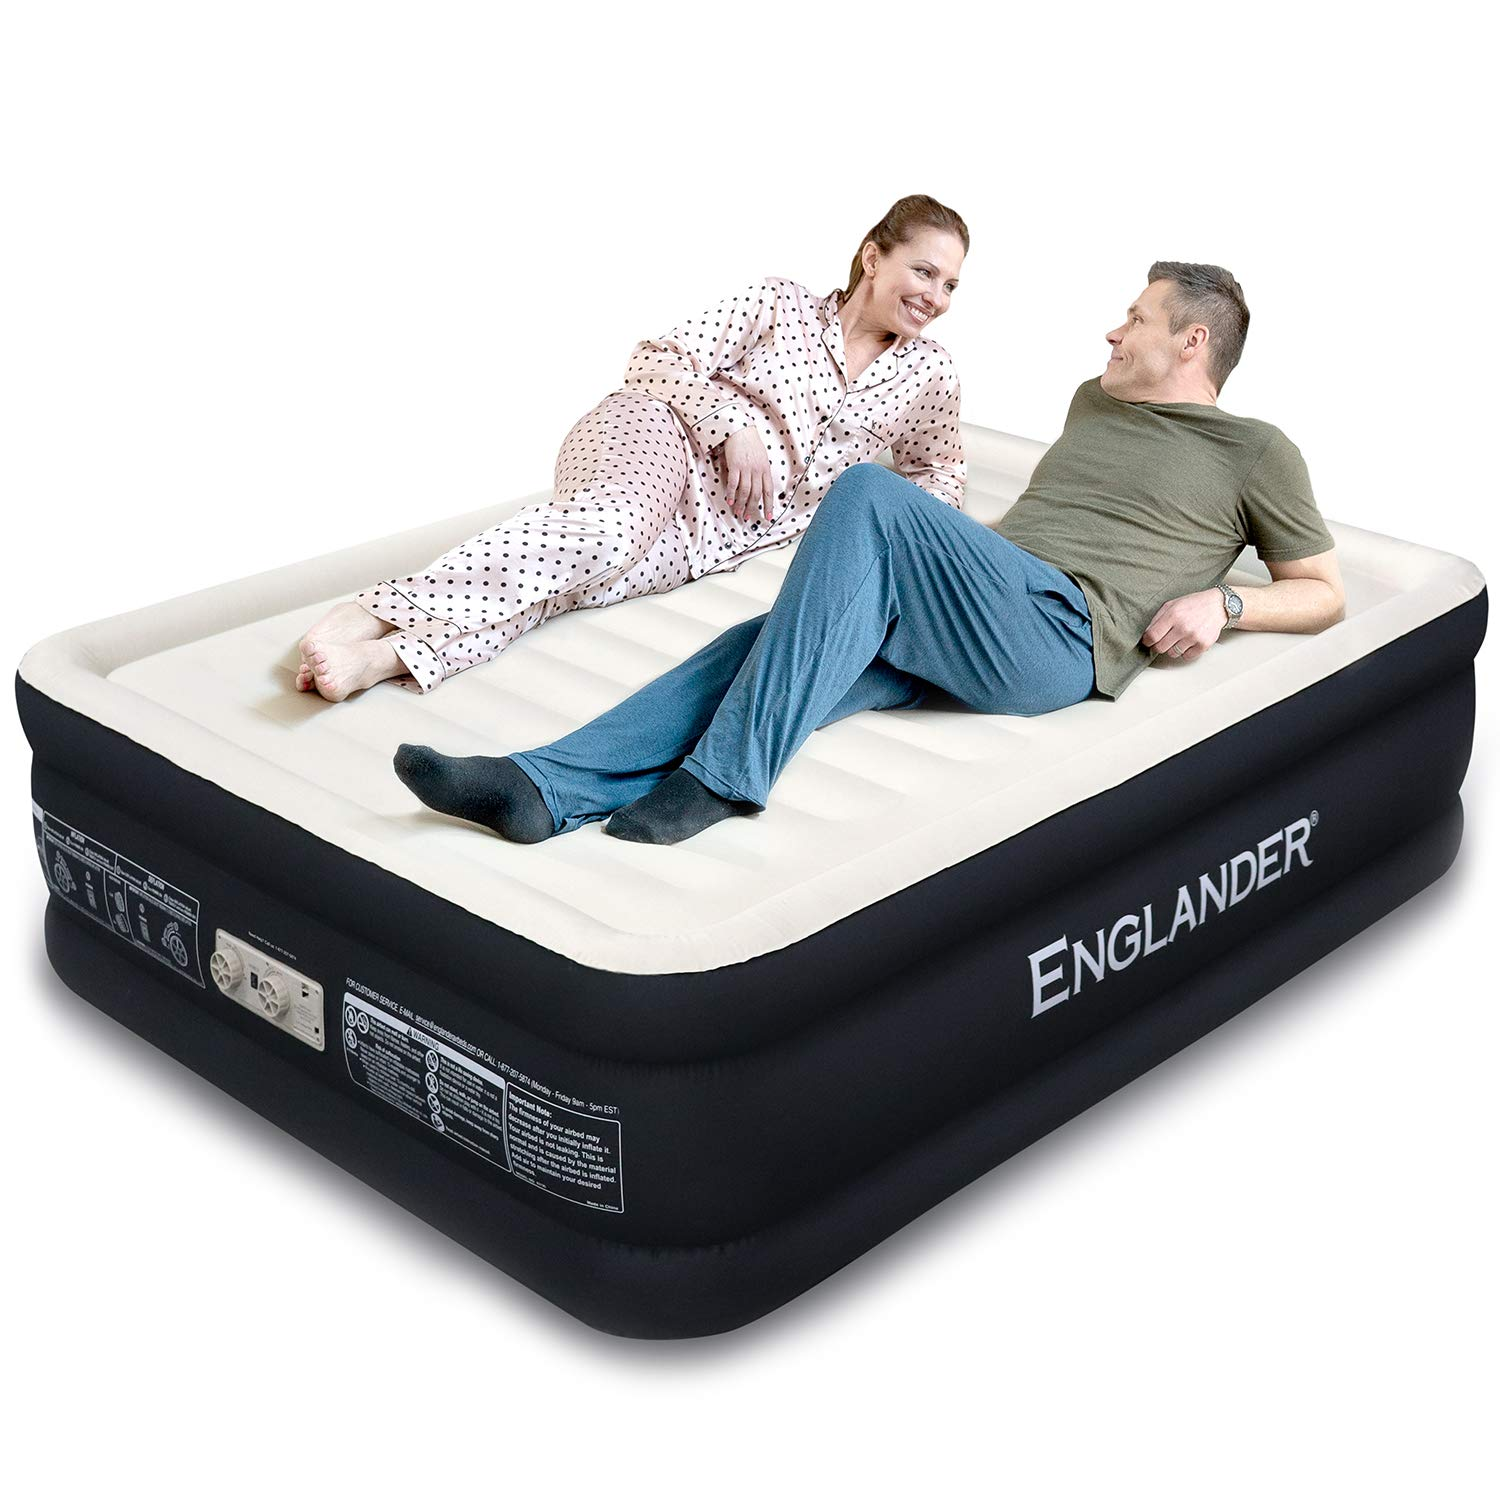 Englander First Ever Microfiber Queen Air Mattress, Luxury Microfiber airbed with Built-in Pump, Highest End Blow Up Bed, Inflatable Air Mattresses for Guests Home Travel 5-Year Warranty (Black) by Englander